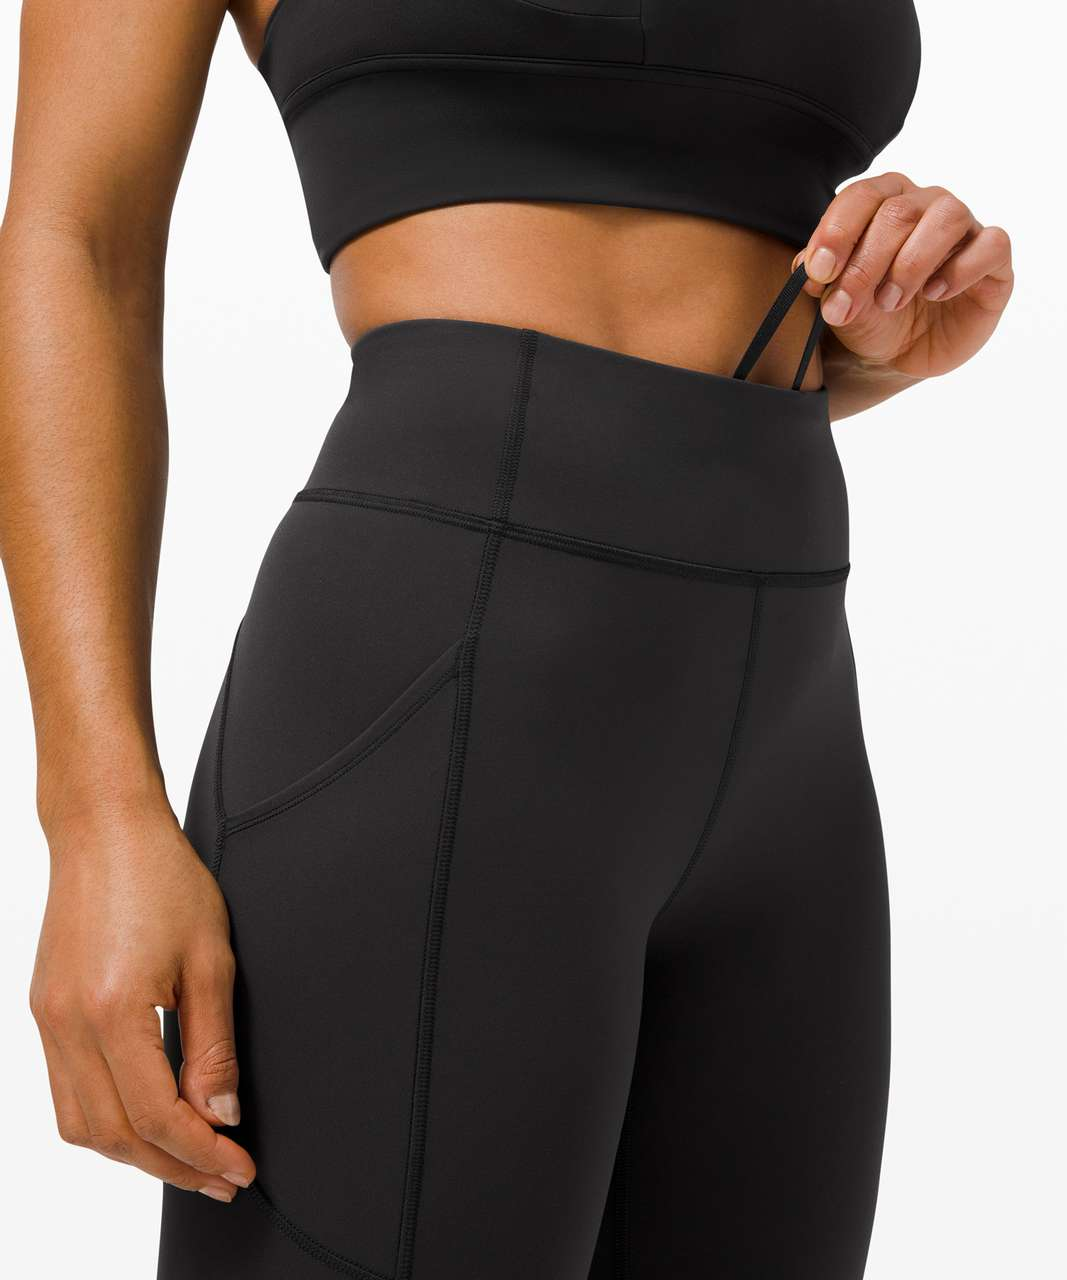 "Lululemon Invigorate High-Rise Crop 17"" - Black"